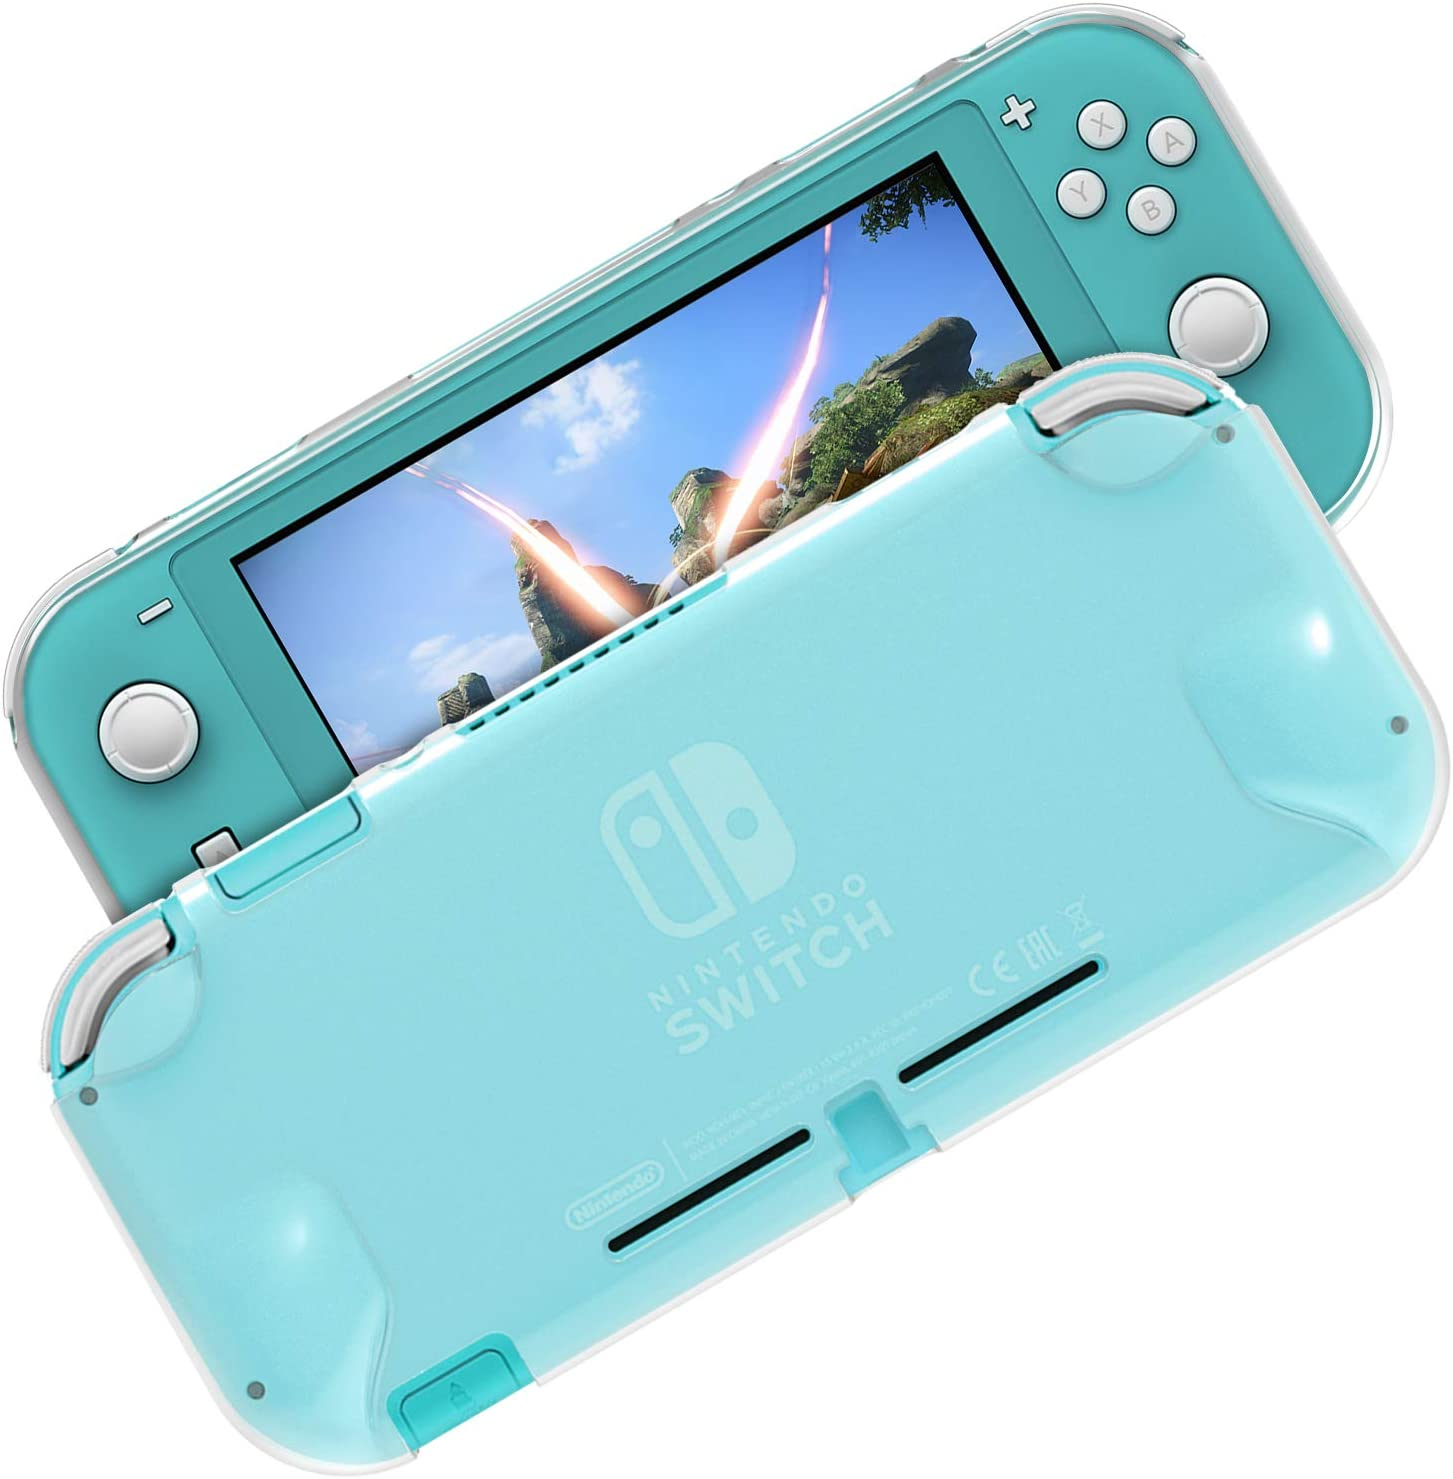 TPU Protector Case for Nintendo Switch Lite, Foggy Clear Soft Anti-Scratches Protective Shell Cover Bumper Back Silicone Case for 2019 Nintendo Switch Lite (Translucent)